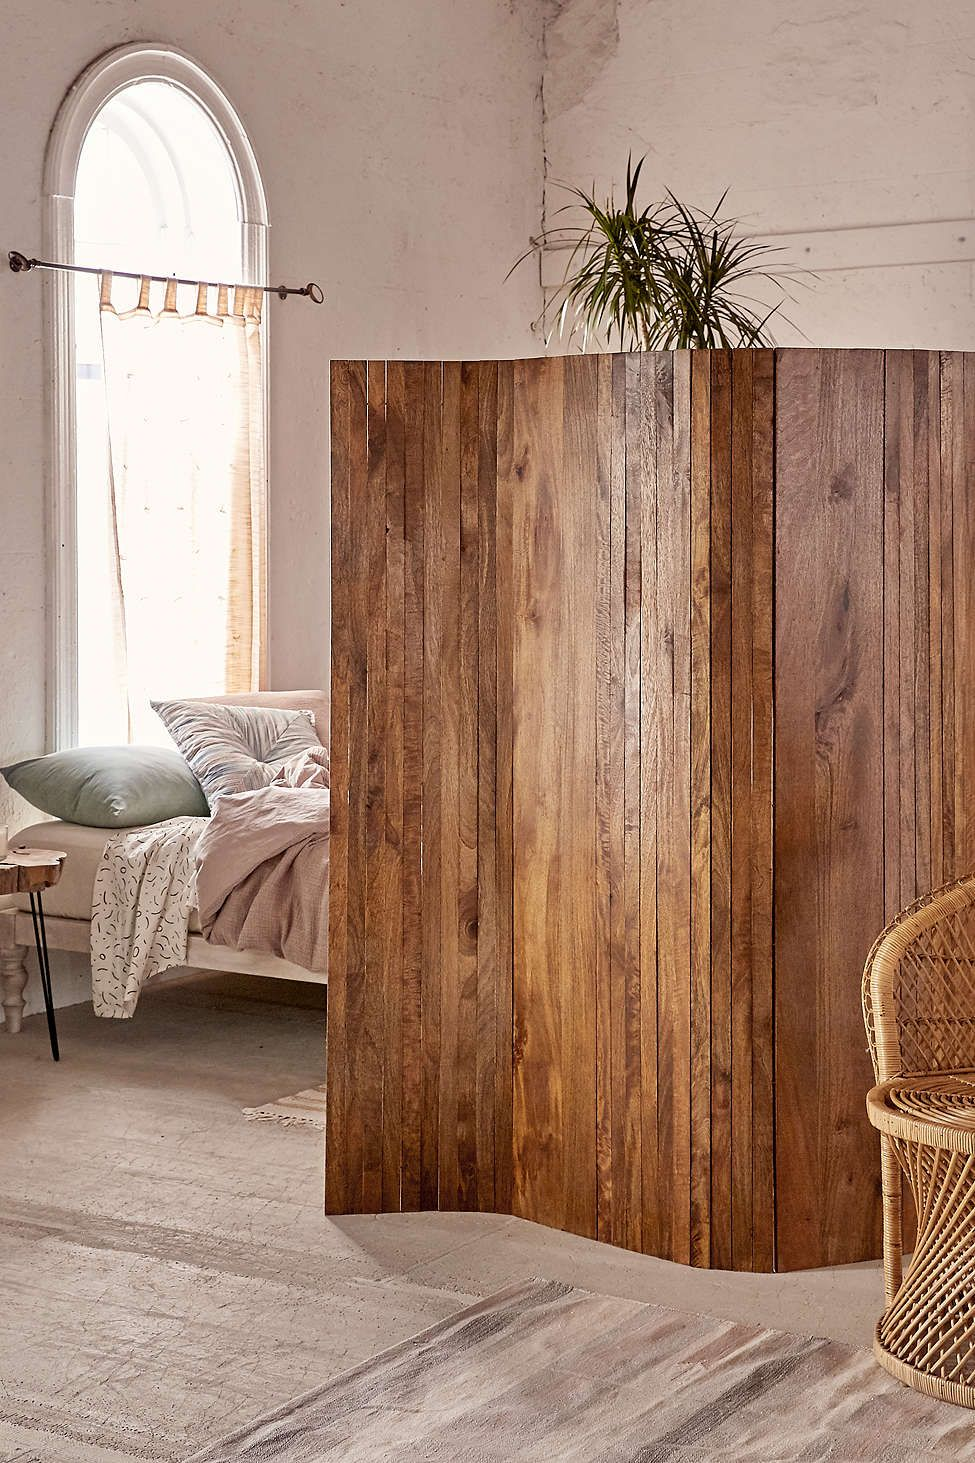 Slatted Screen Room Divider Wooden Room Dividers Wood Room Divider Cheap Room Dividers